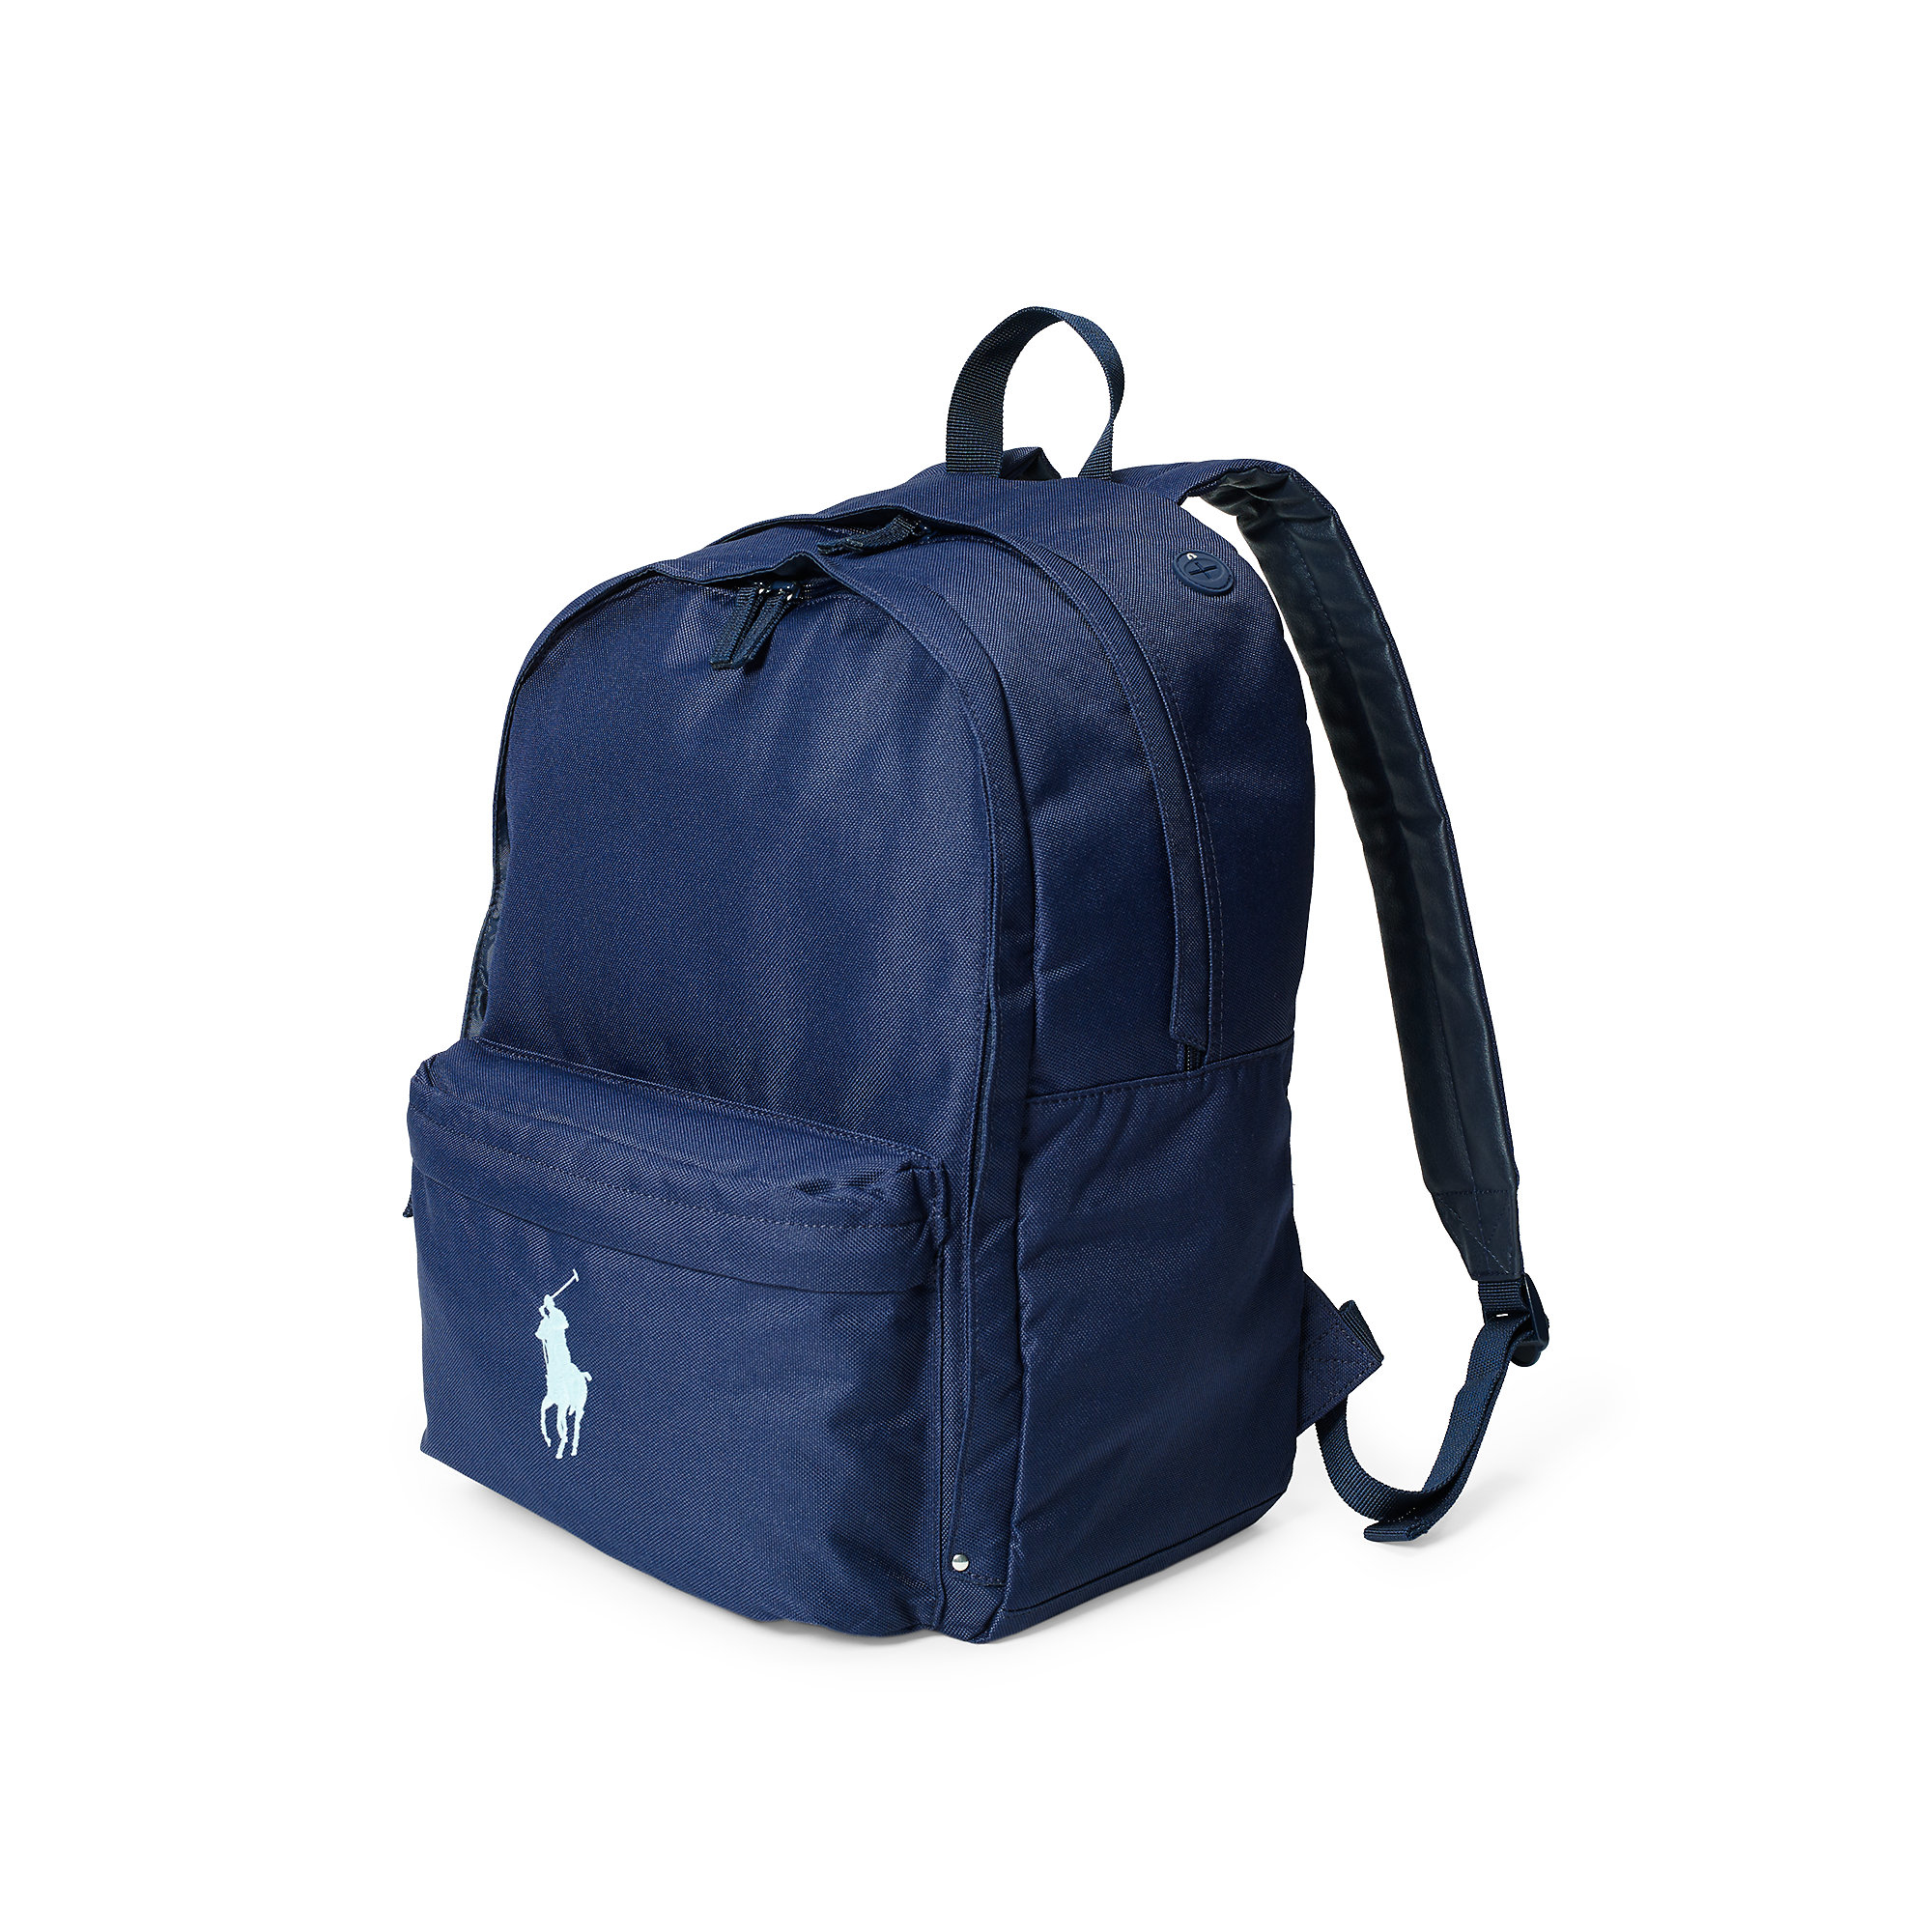 a2b4f4e0a15a Lyst - Ralph Lauren Large Big Pony Backpack in Blue